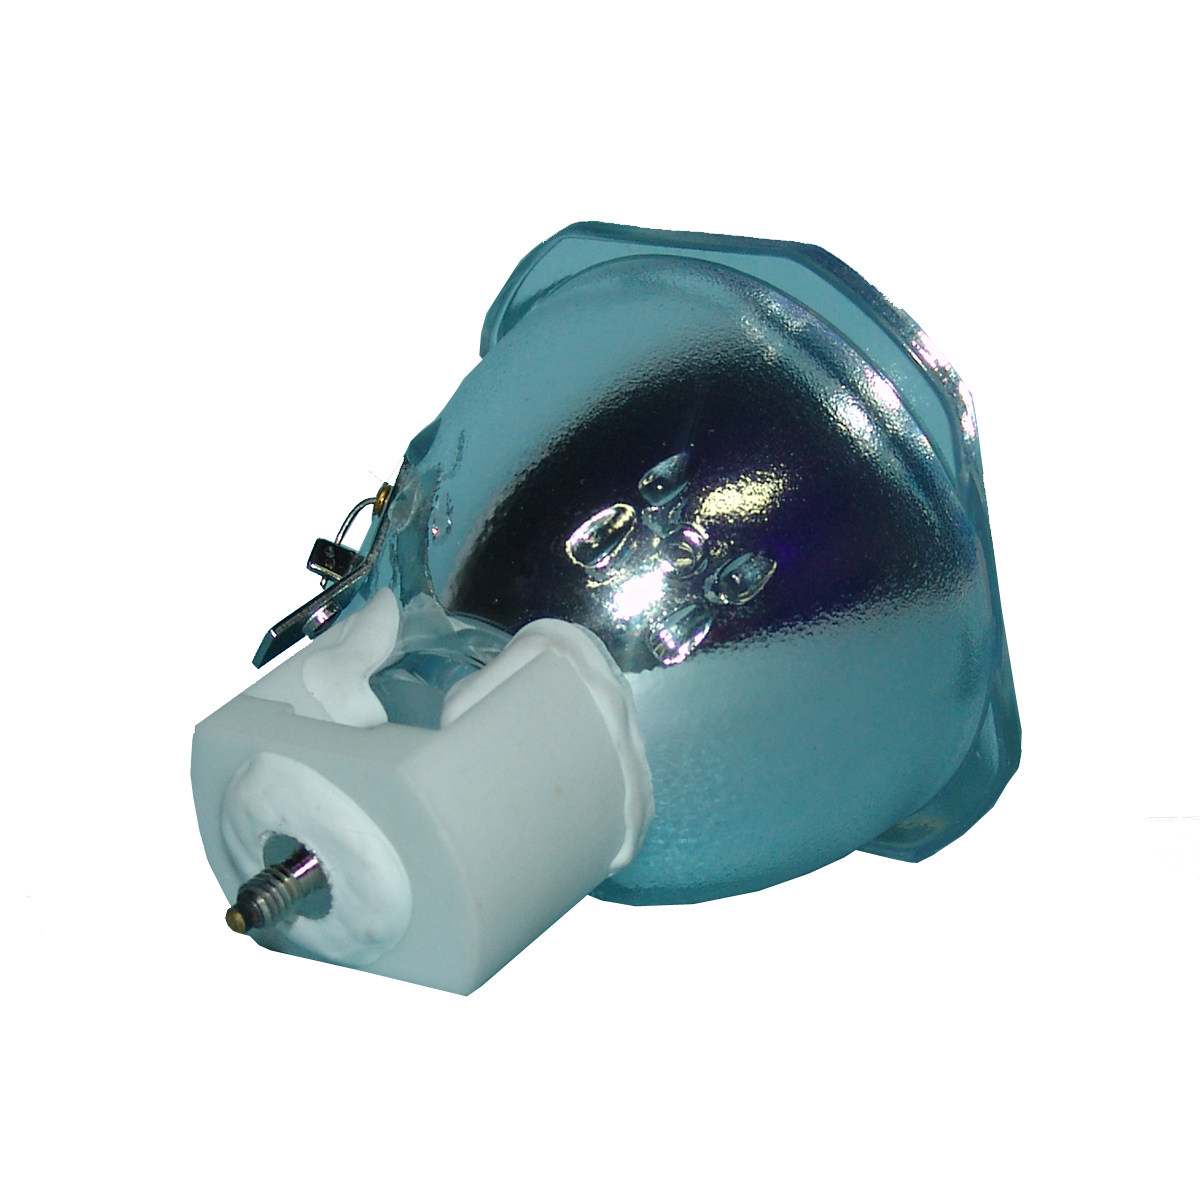 Lutema Economy Bulb for Mitsubishi HD4000U Projector (Lamp with Housing) - image 2 of 5